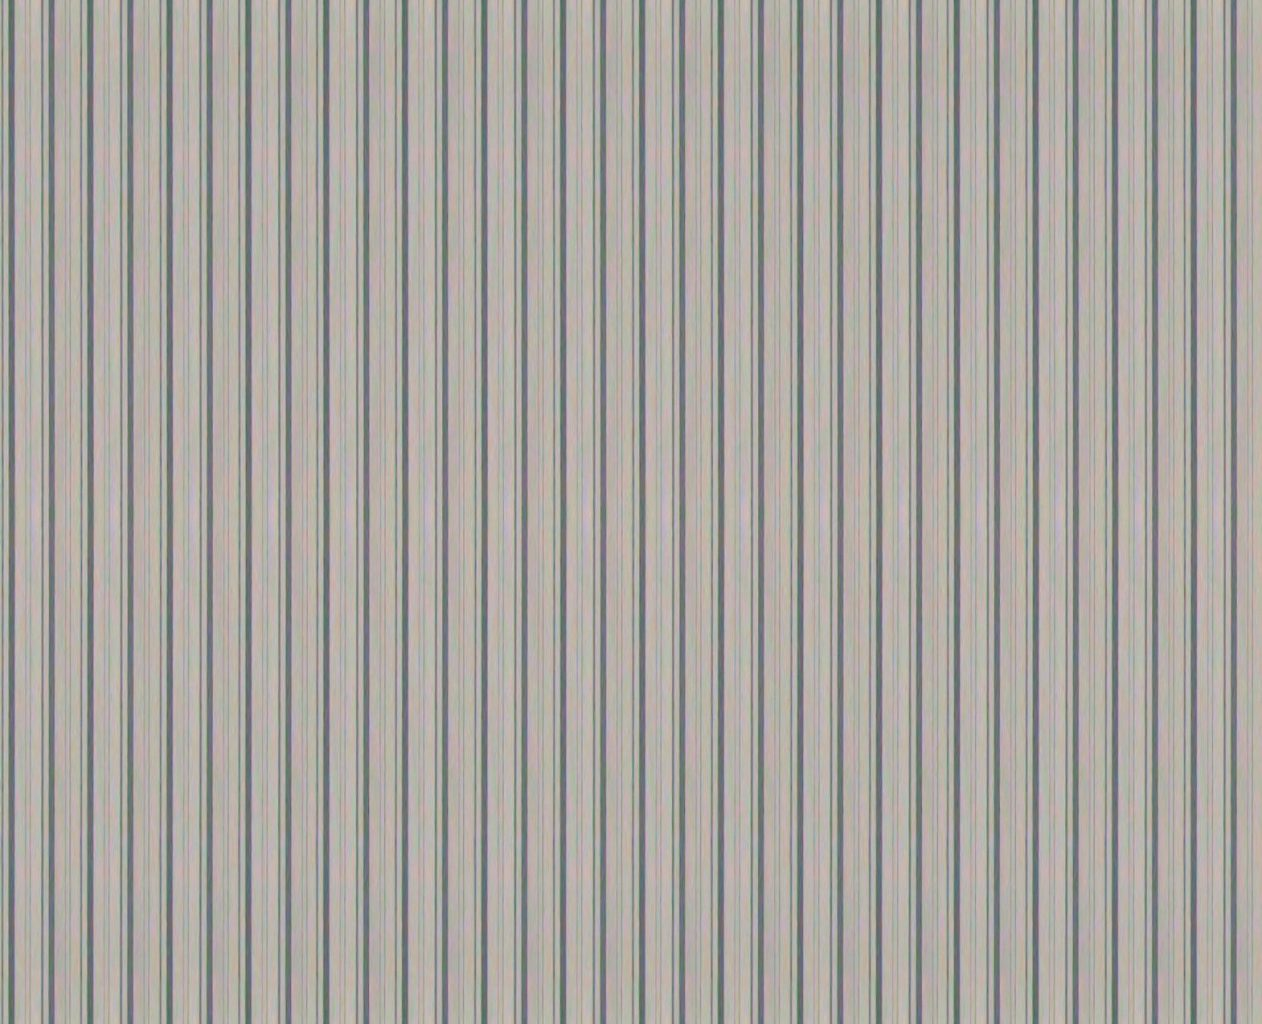 Cheap Corrugated Metal Roofing Panel Dimensions